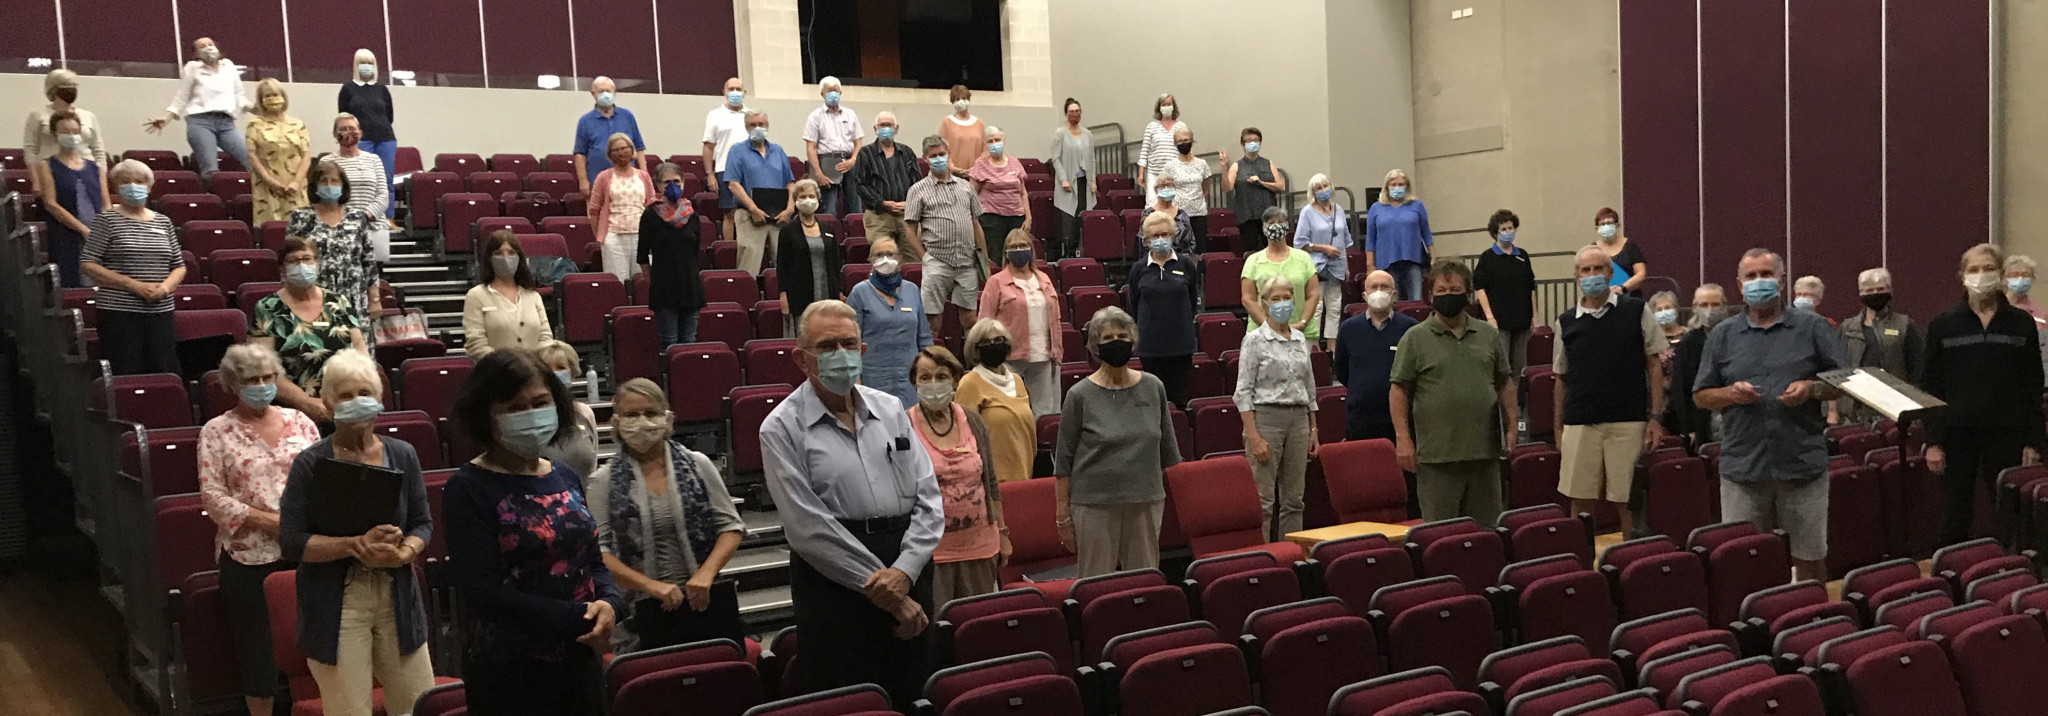 The Noosa Chorale choir in rehearsal for the concert ©Ian Jobling/Noosa Chorale